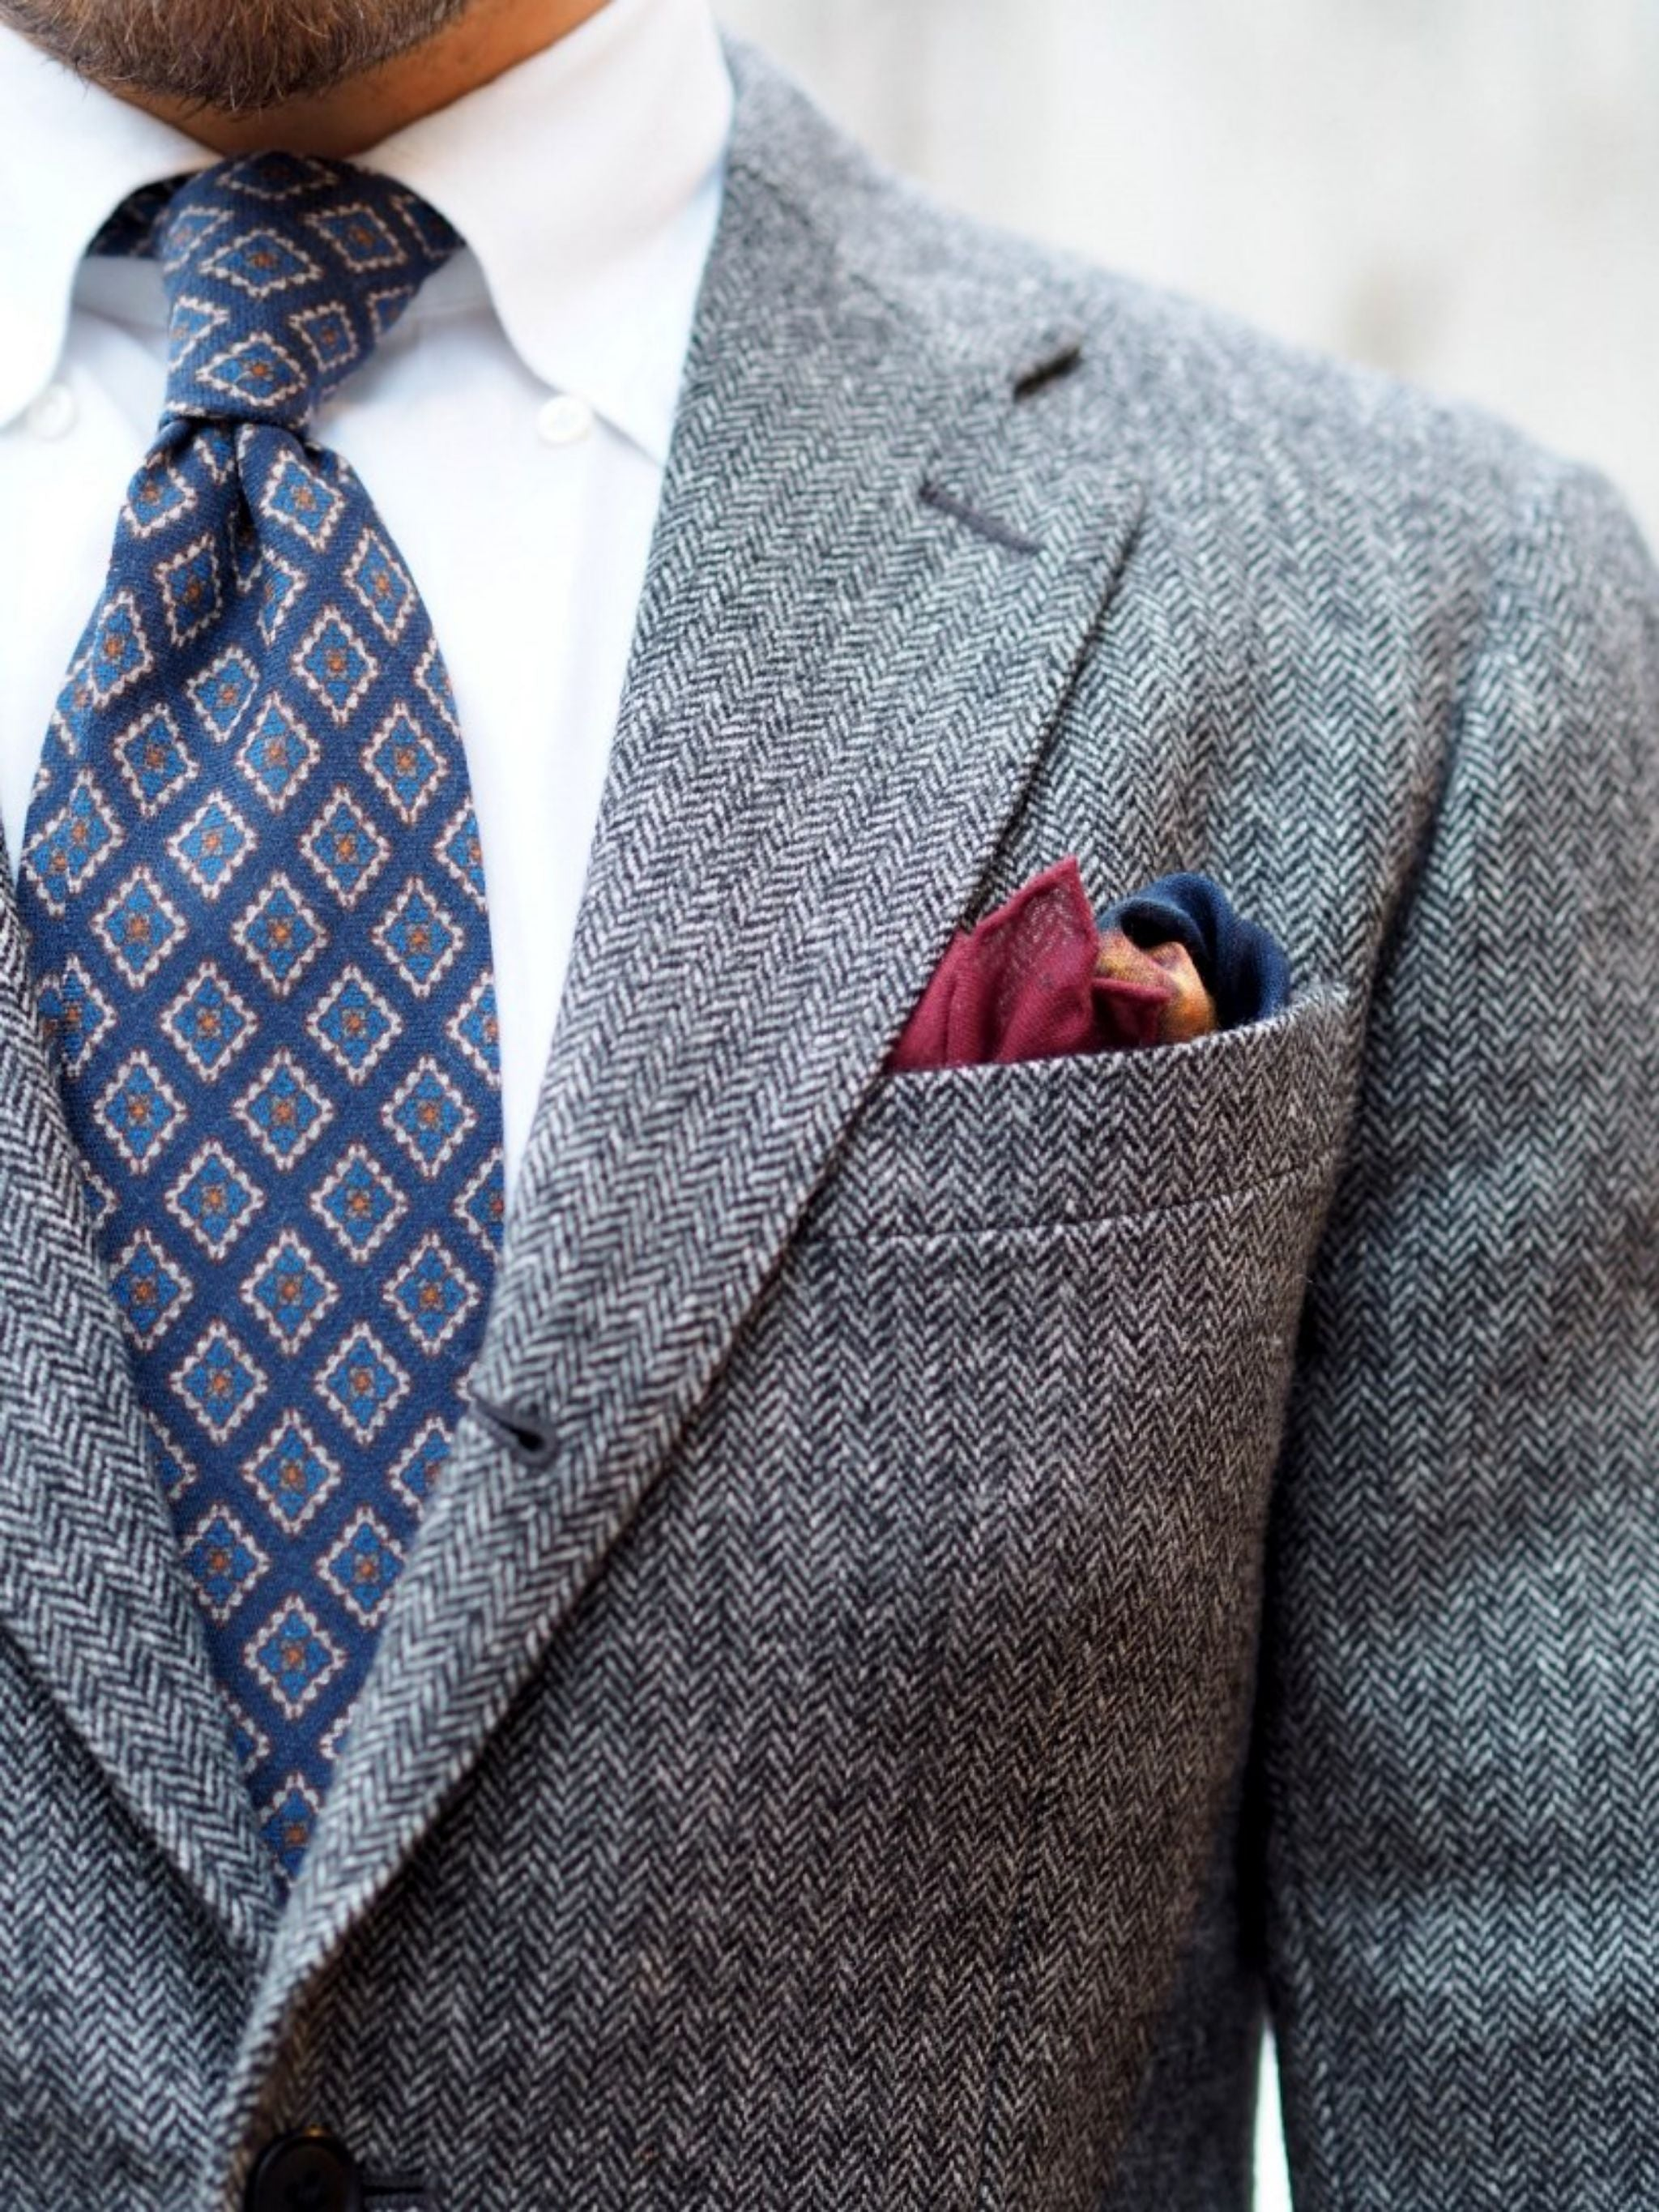 Autumnal business casual outfits - the blue wool tie with symposium pocket square